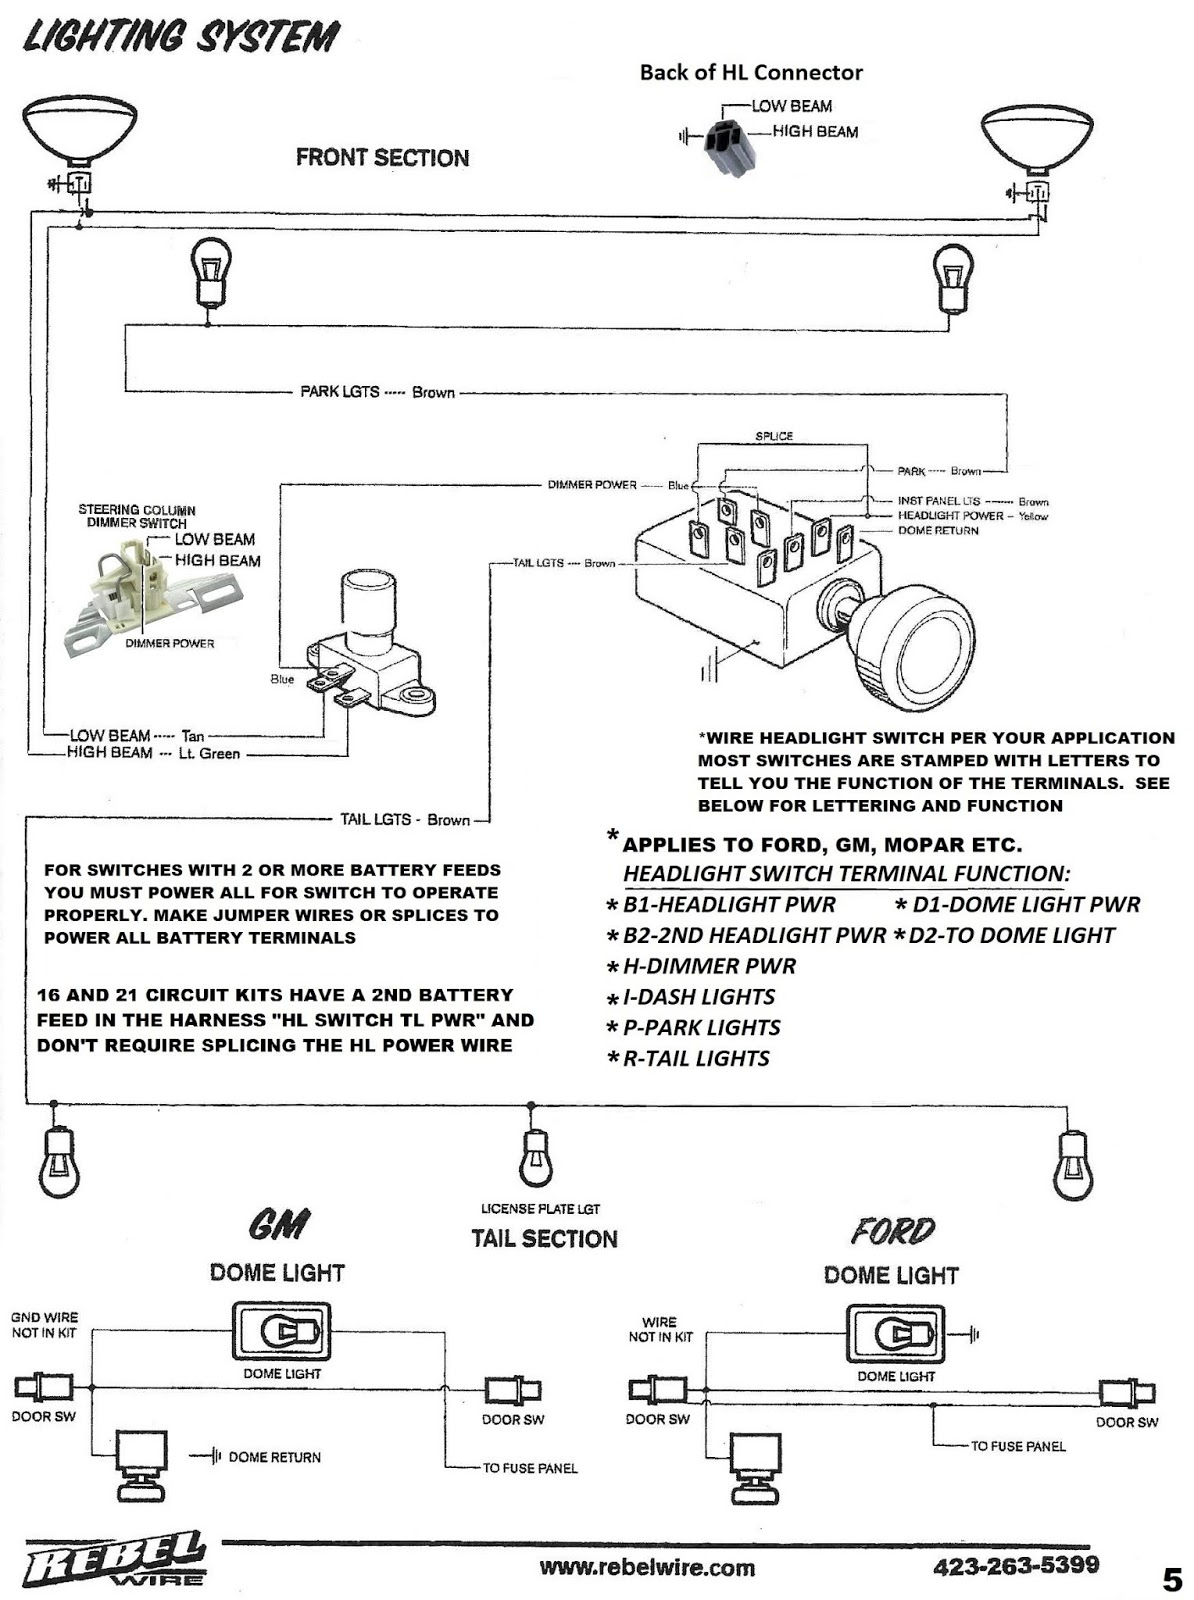 rebel wire lighting system wiring diagram [ 1194 x 1600 Pixel ]